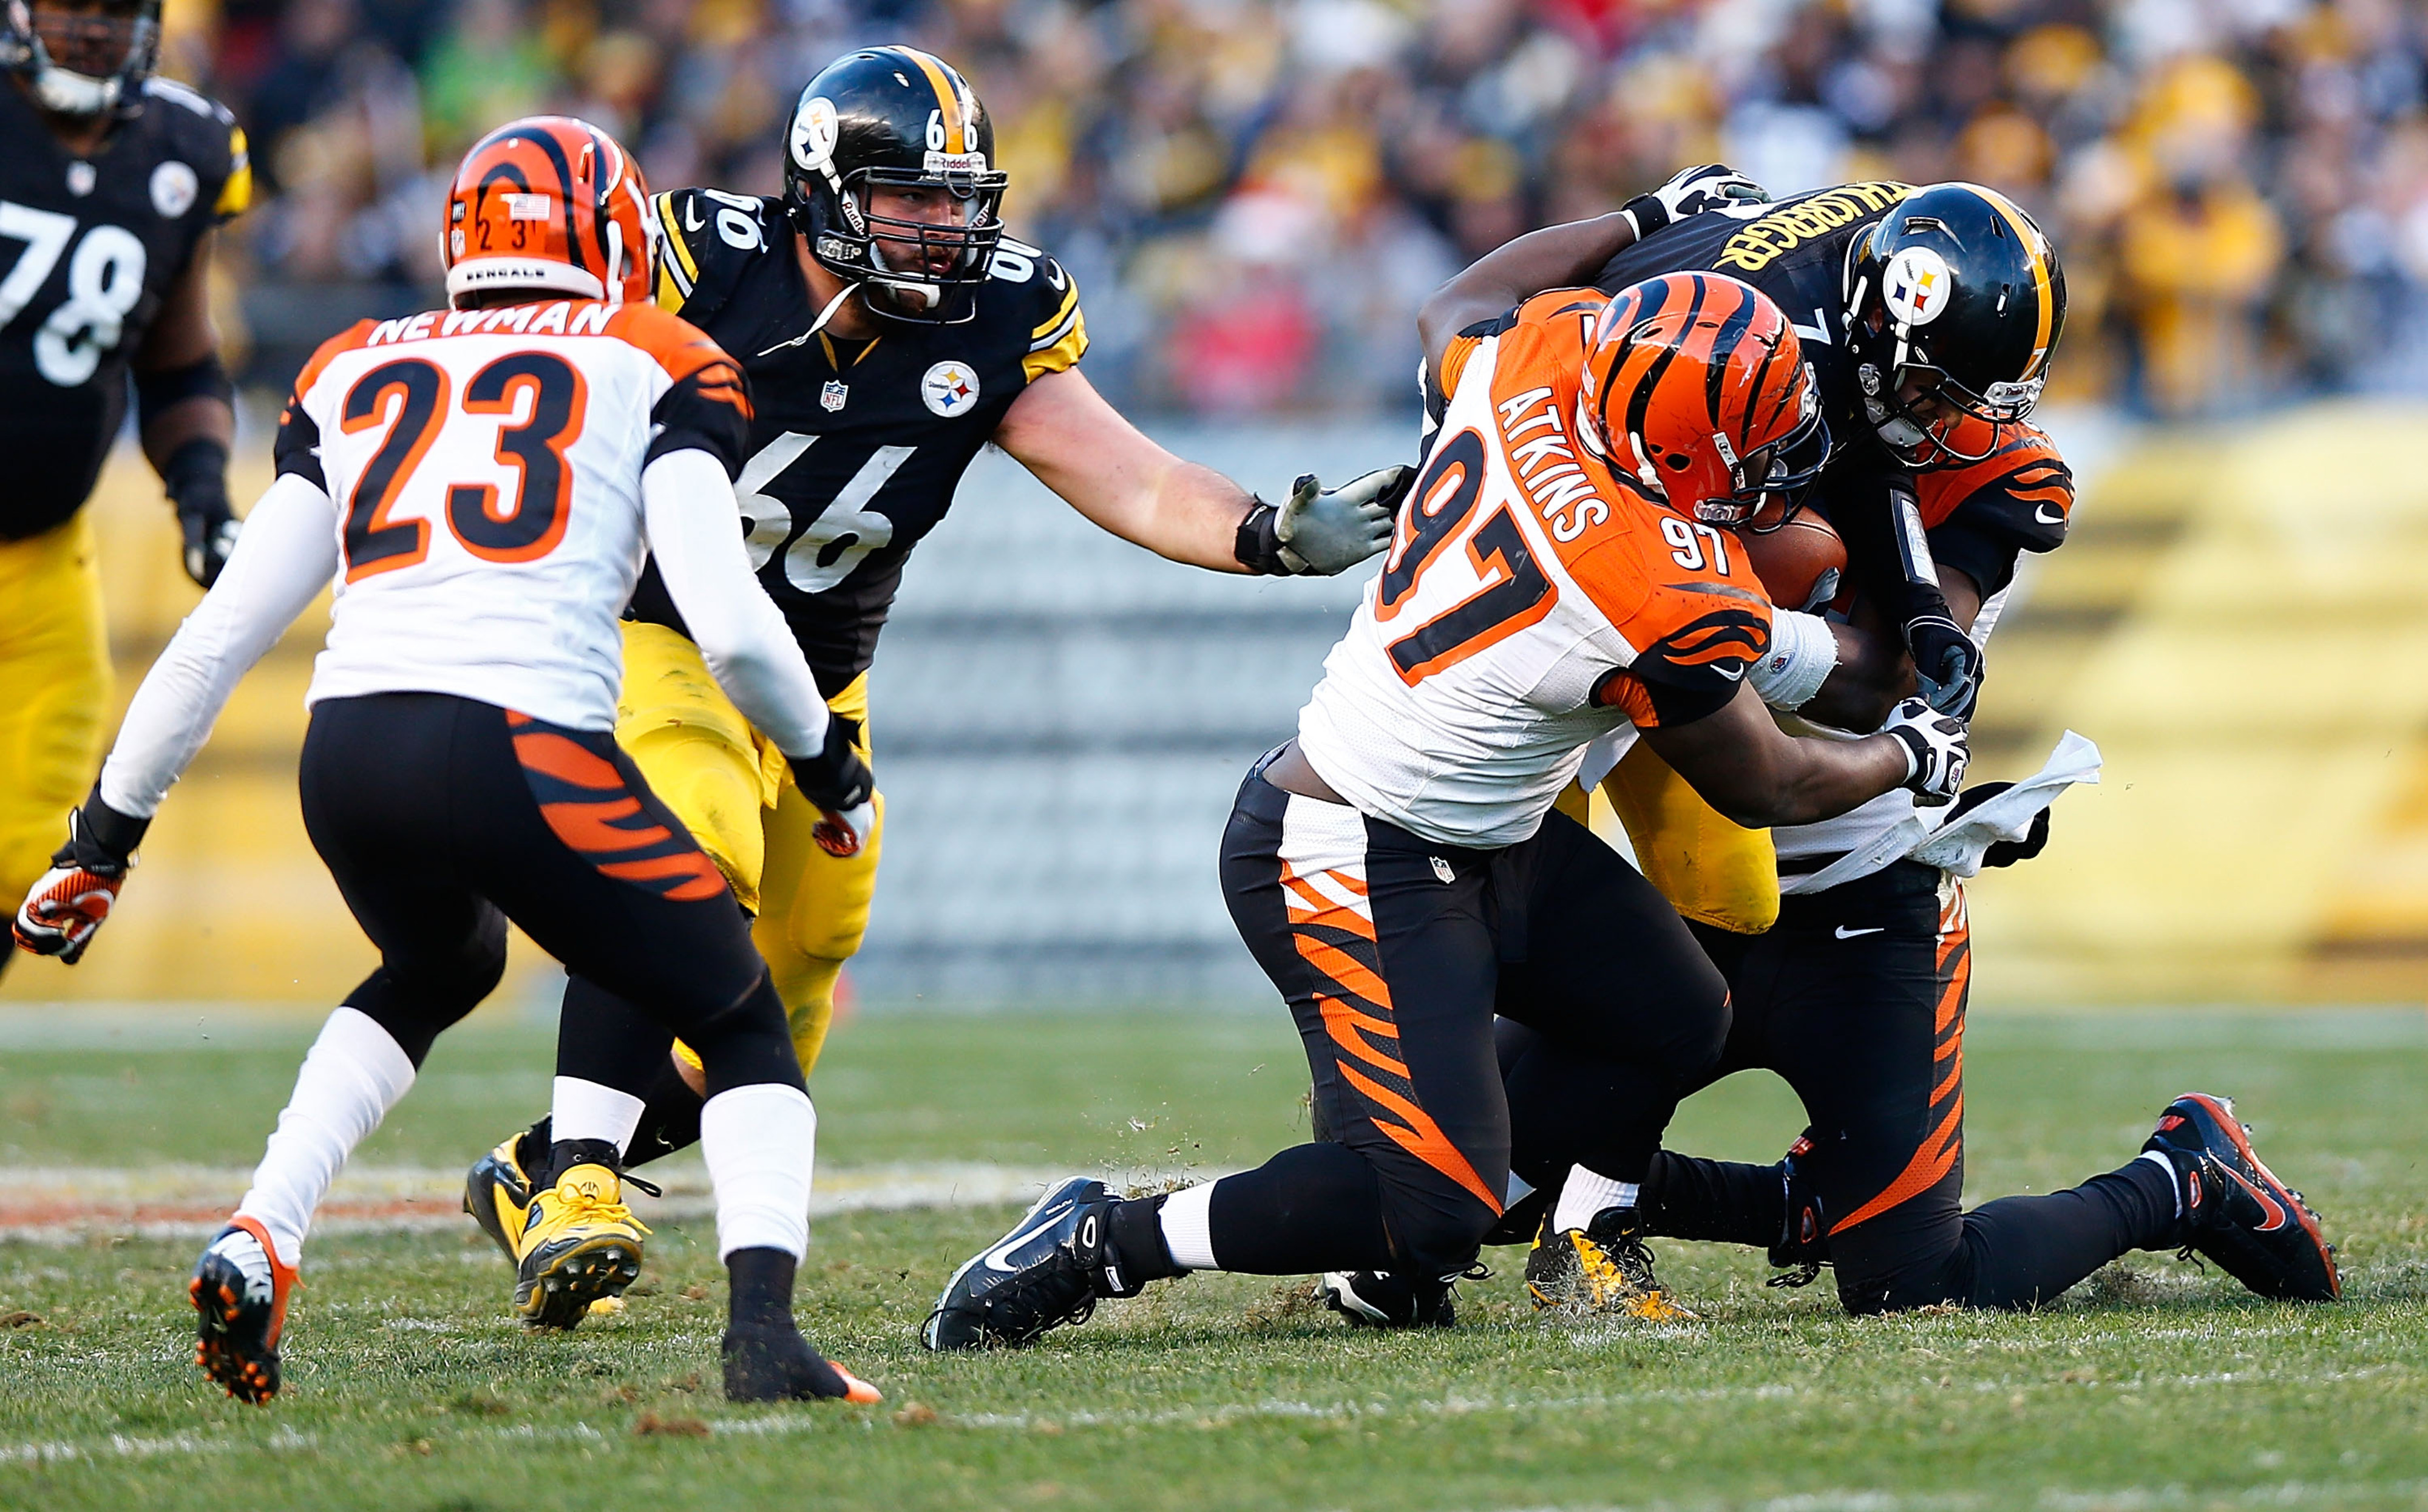 Geno Atkins slam dunks Ben Roethlisberger as David DeCatro can only look on....